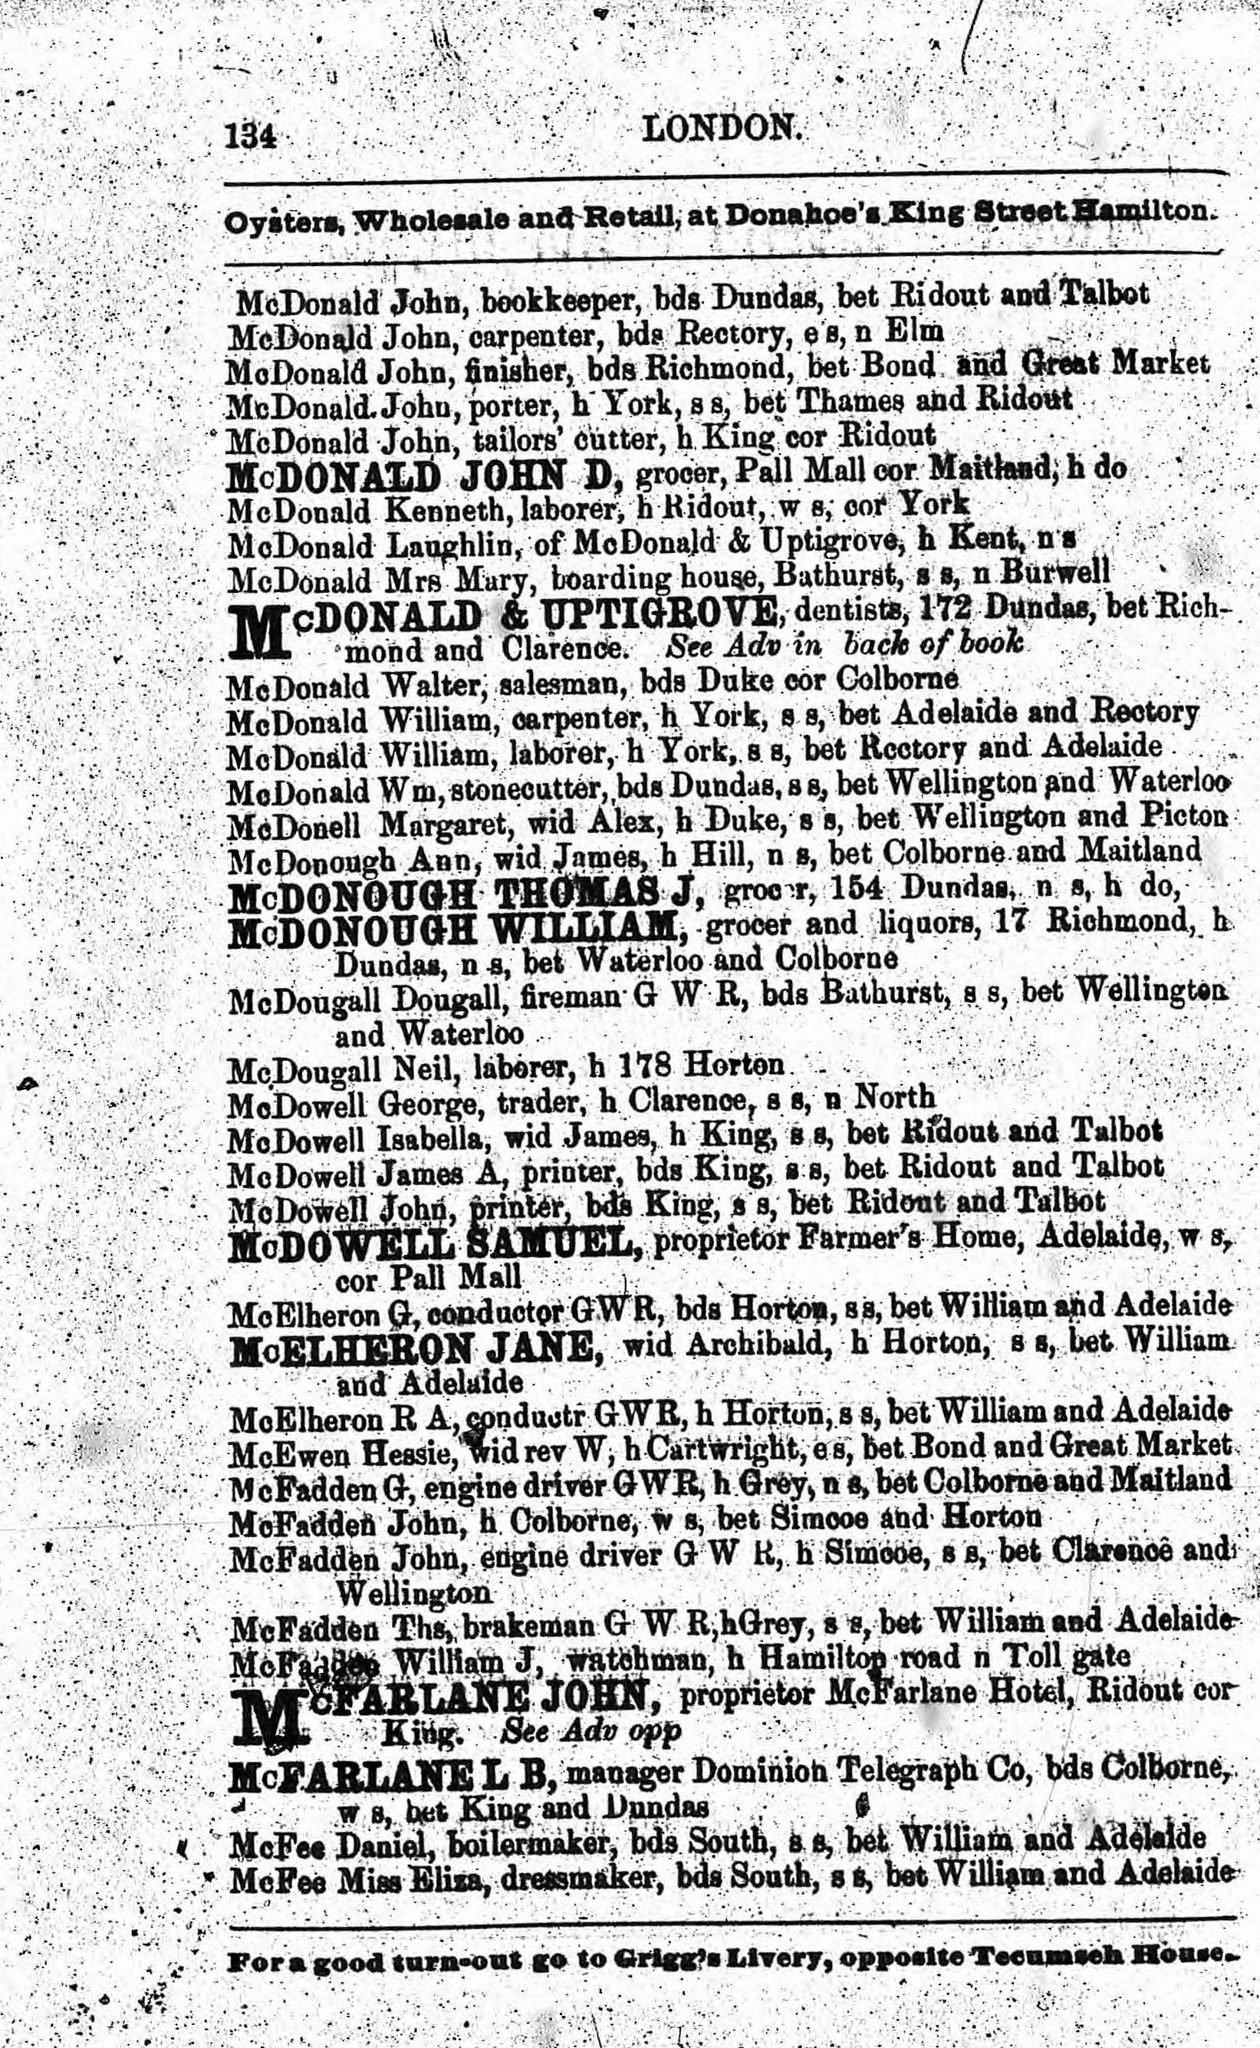 1875 London Ontario City Directory